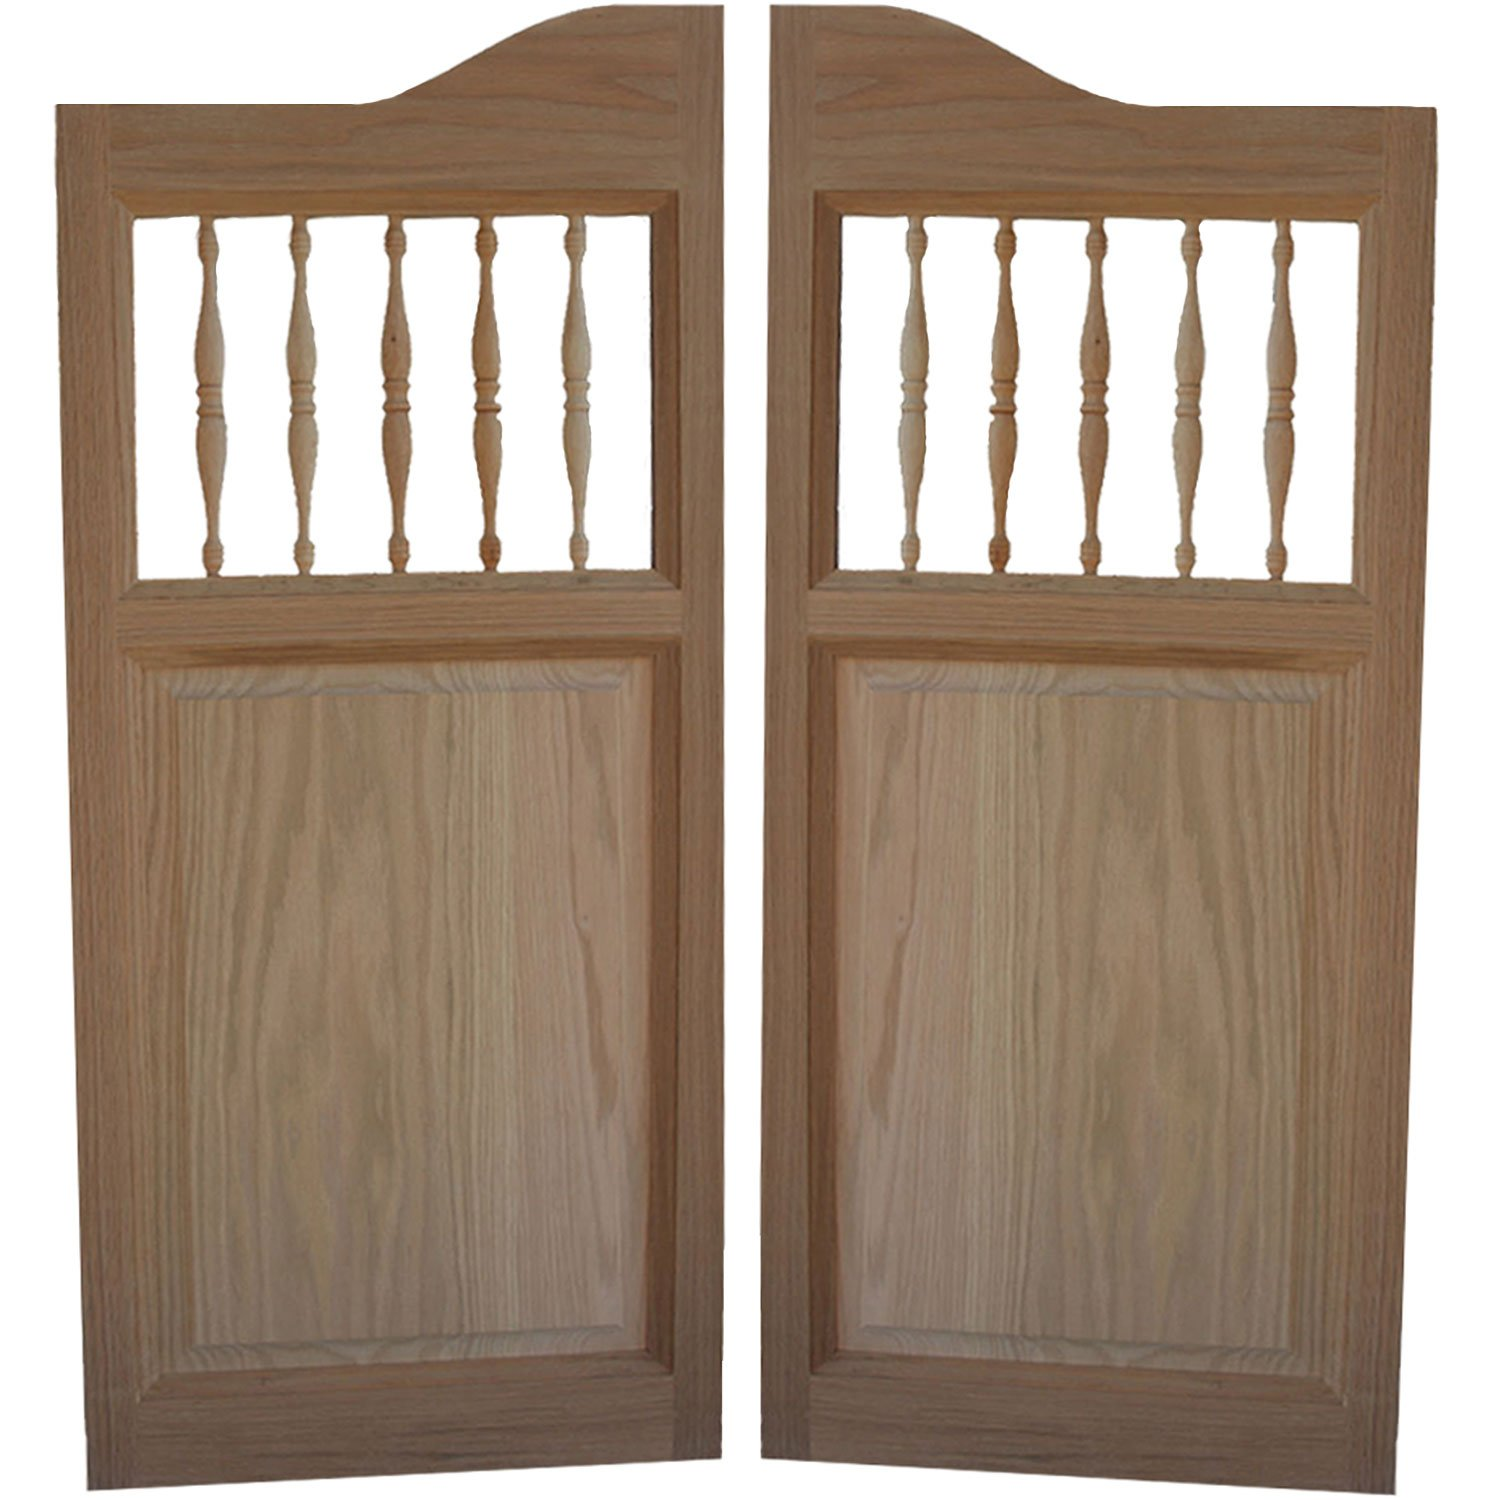 Custom Made Solid Oak Western Swinging Cafe Doors / Saloon Doors with Hardware Fits Any 24 - 36  Door Opening - Swinging Doors Saloon Style - Amazon.com & Custom Made Solid Oak Western Swinging Cafe Doors / Saloon Doors ... pezcame.com